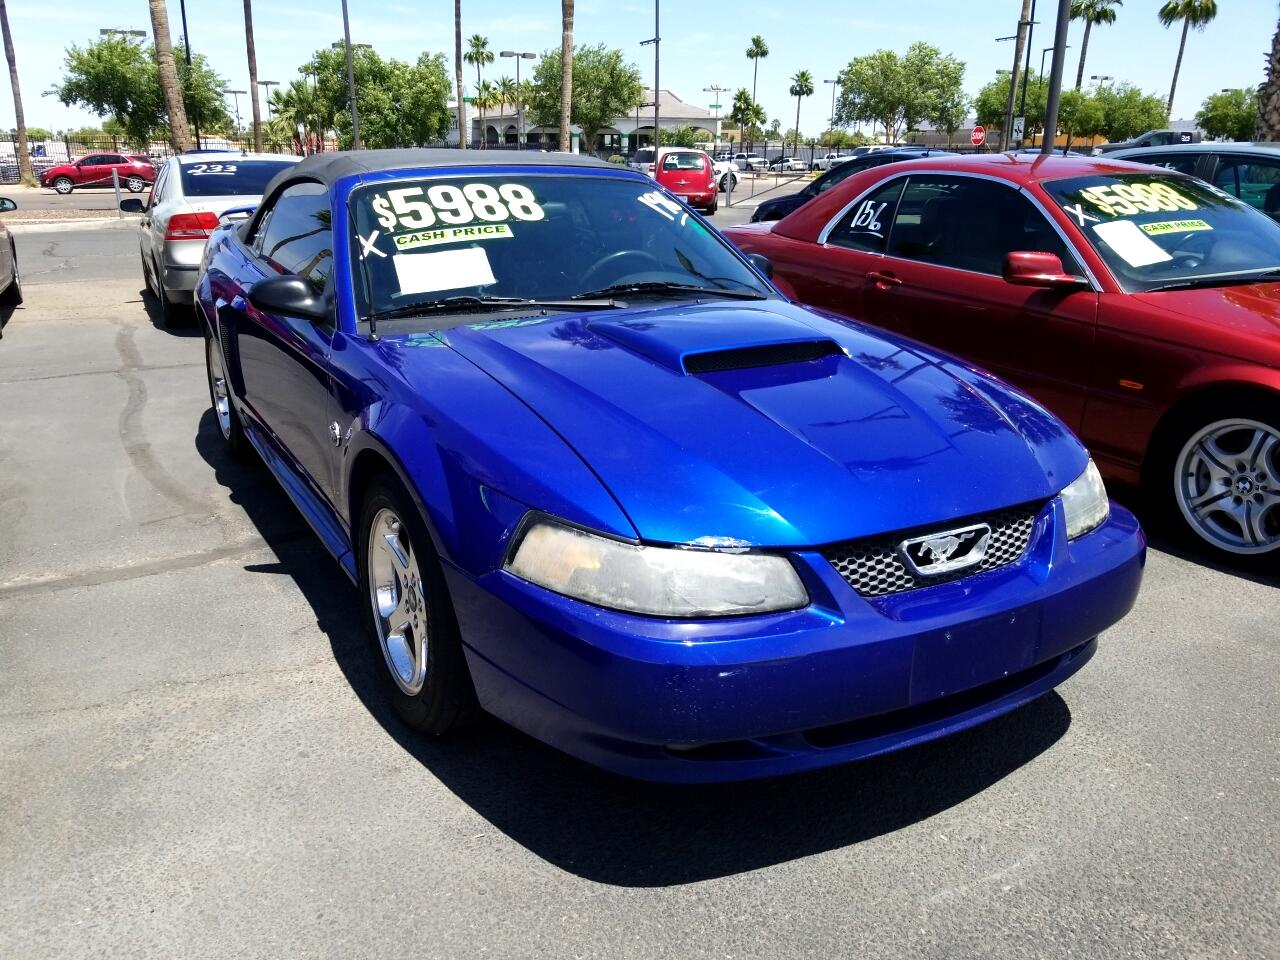 Used 2004 Ford Mustang Gt Deluxe Convertible For Sale In